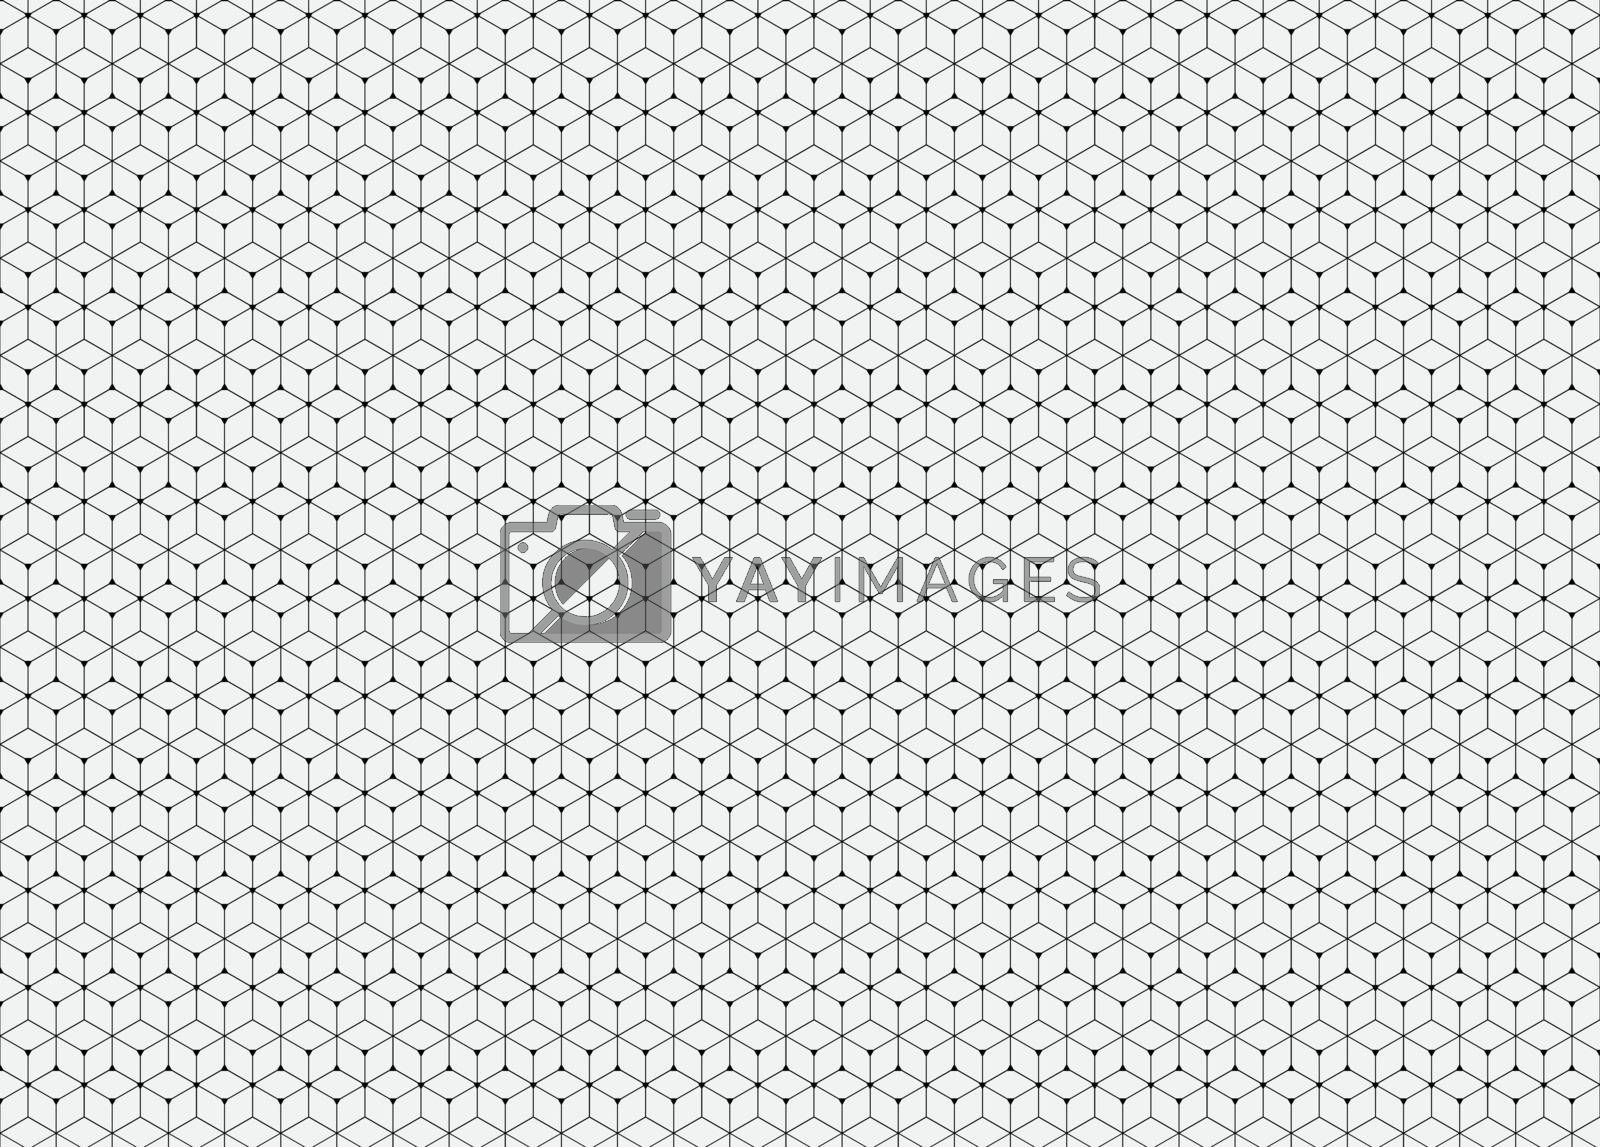 Abstract pattern. Hexagon repeating geometric background and filled triangles in nodes. Modern stylish texture.  Trendy hipster geometry. Vector illustration